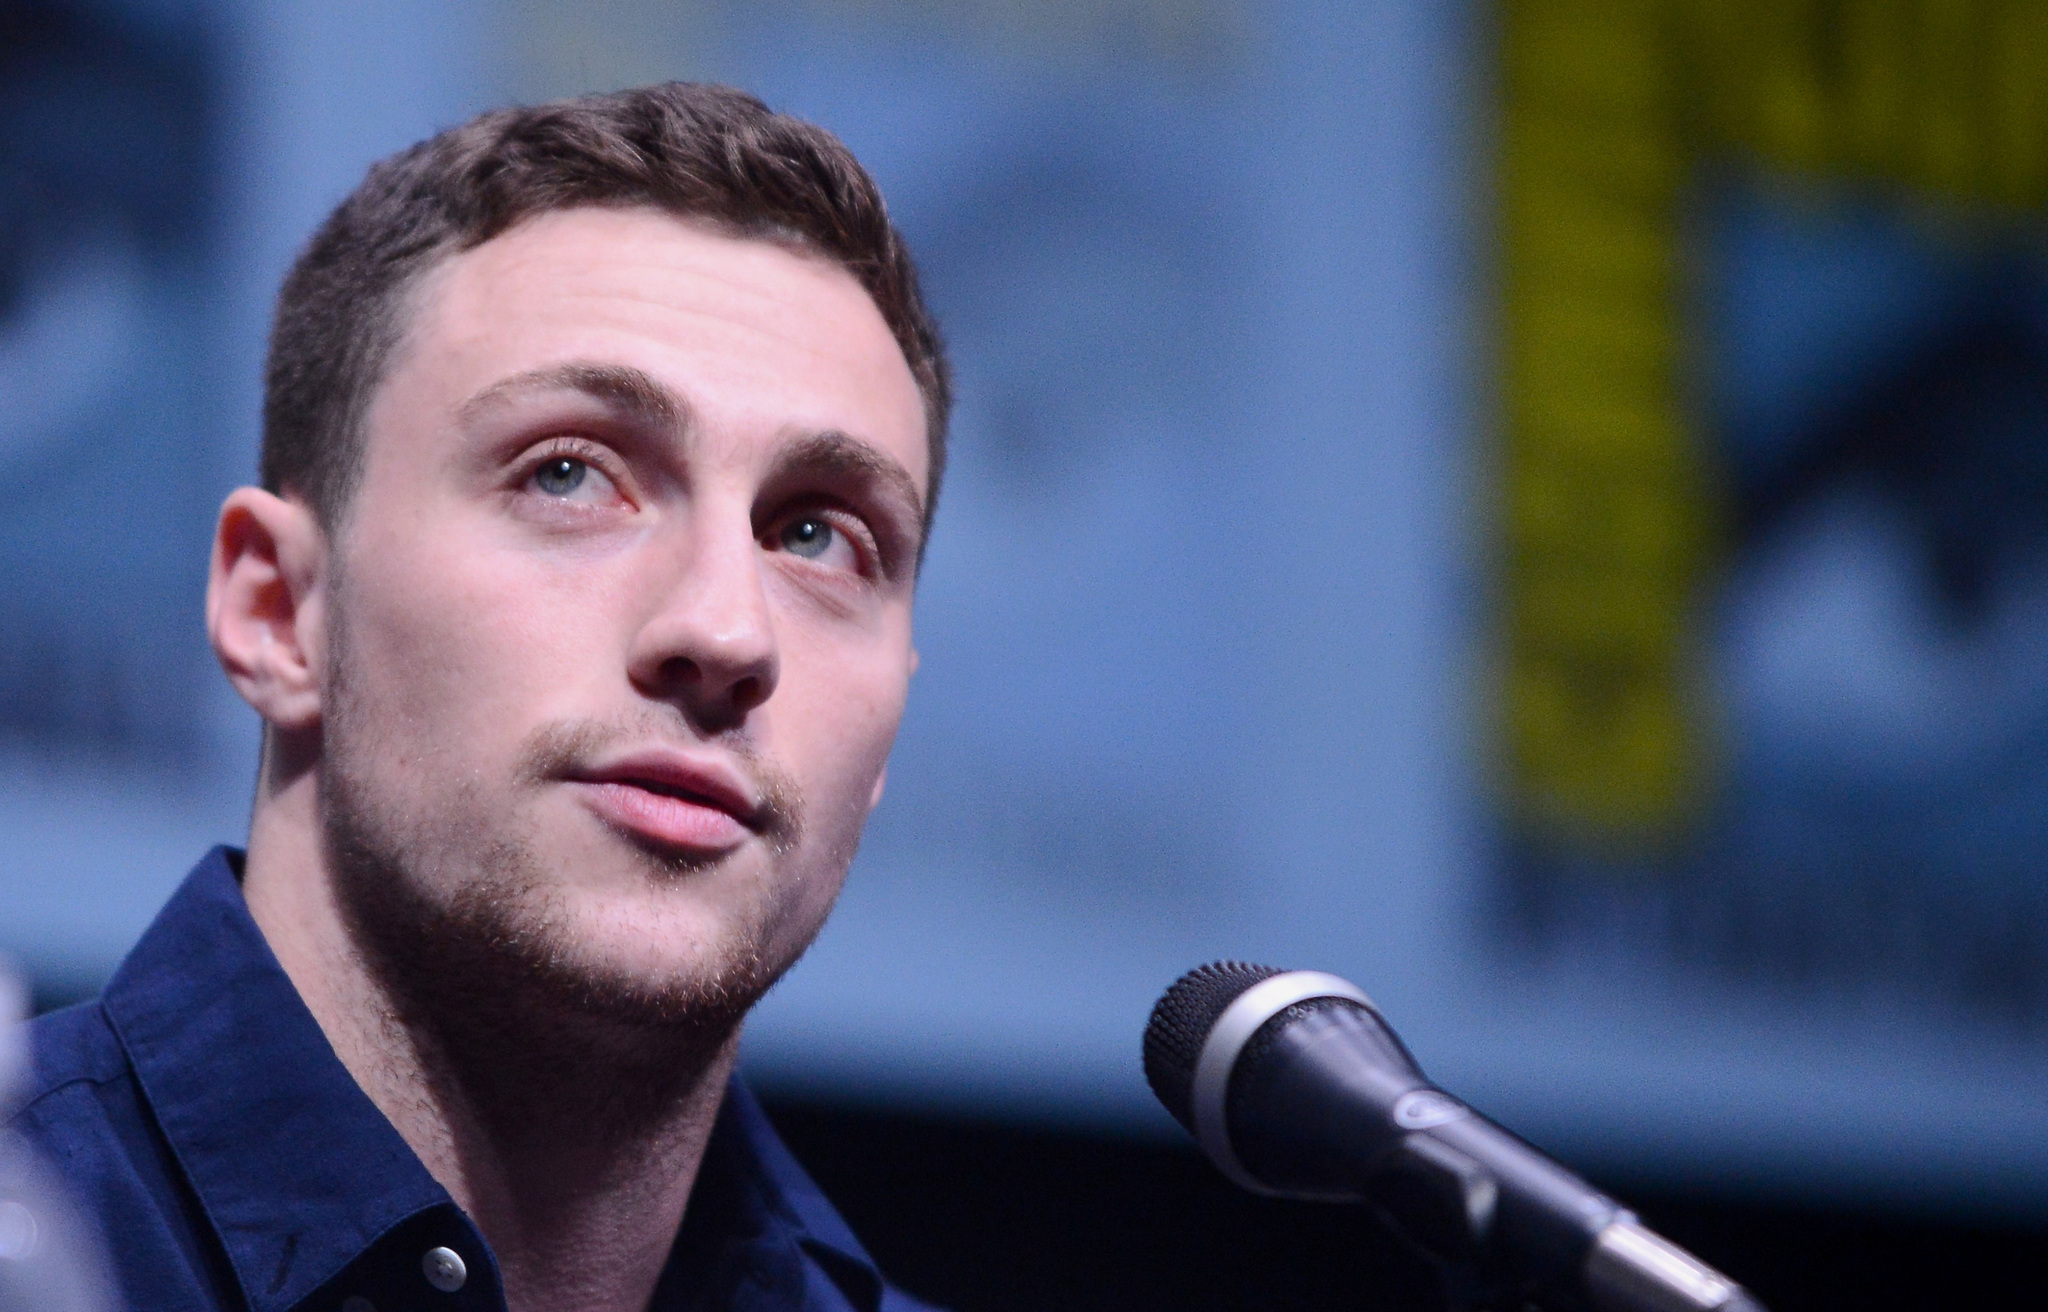 Aaron Taylor-Johnson at an event for Kick-Ass 2 (2013)